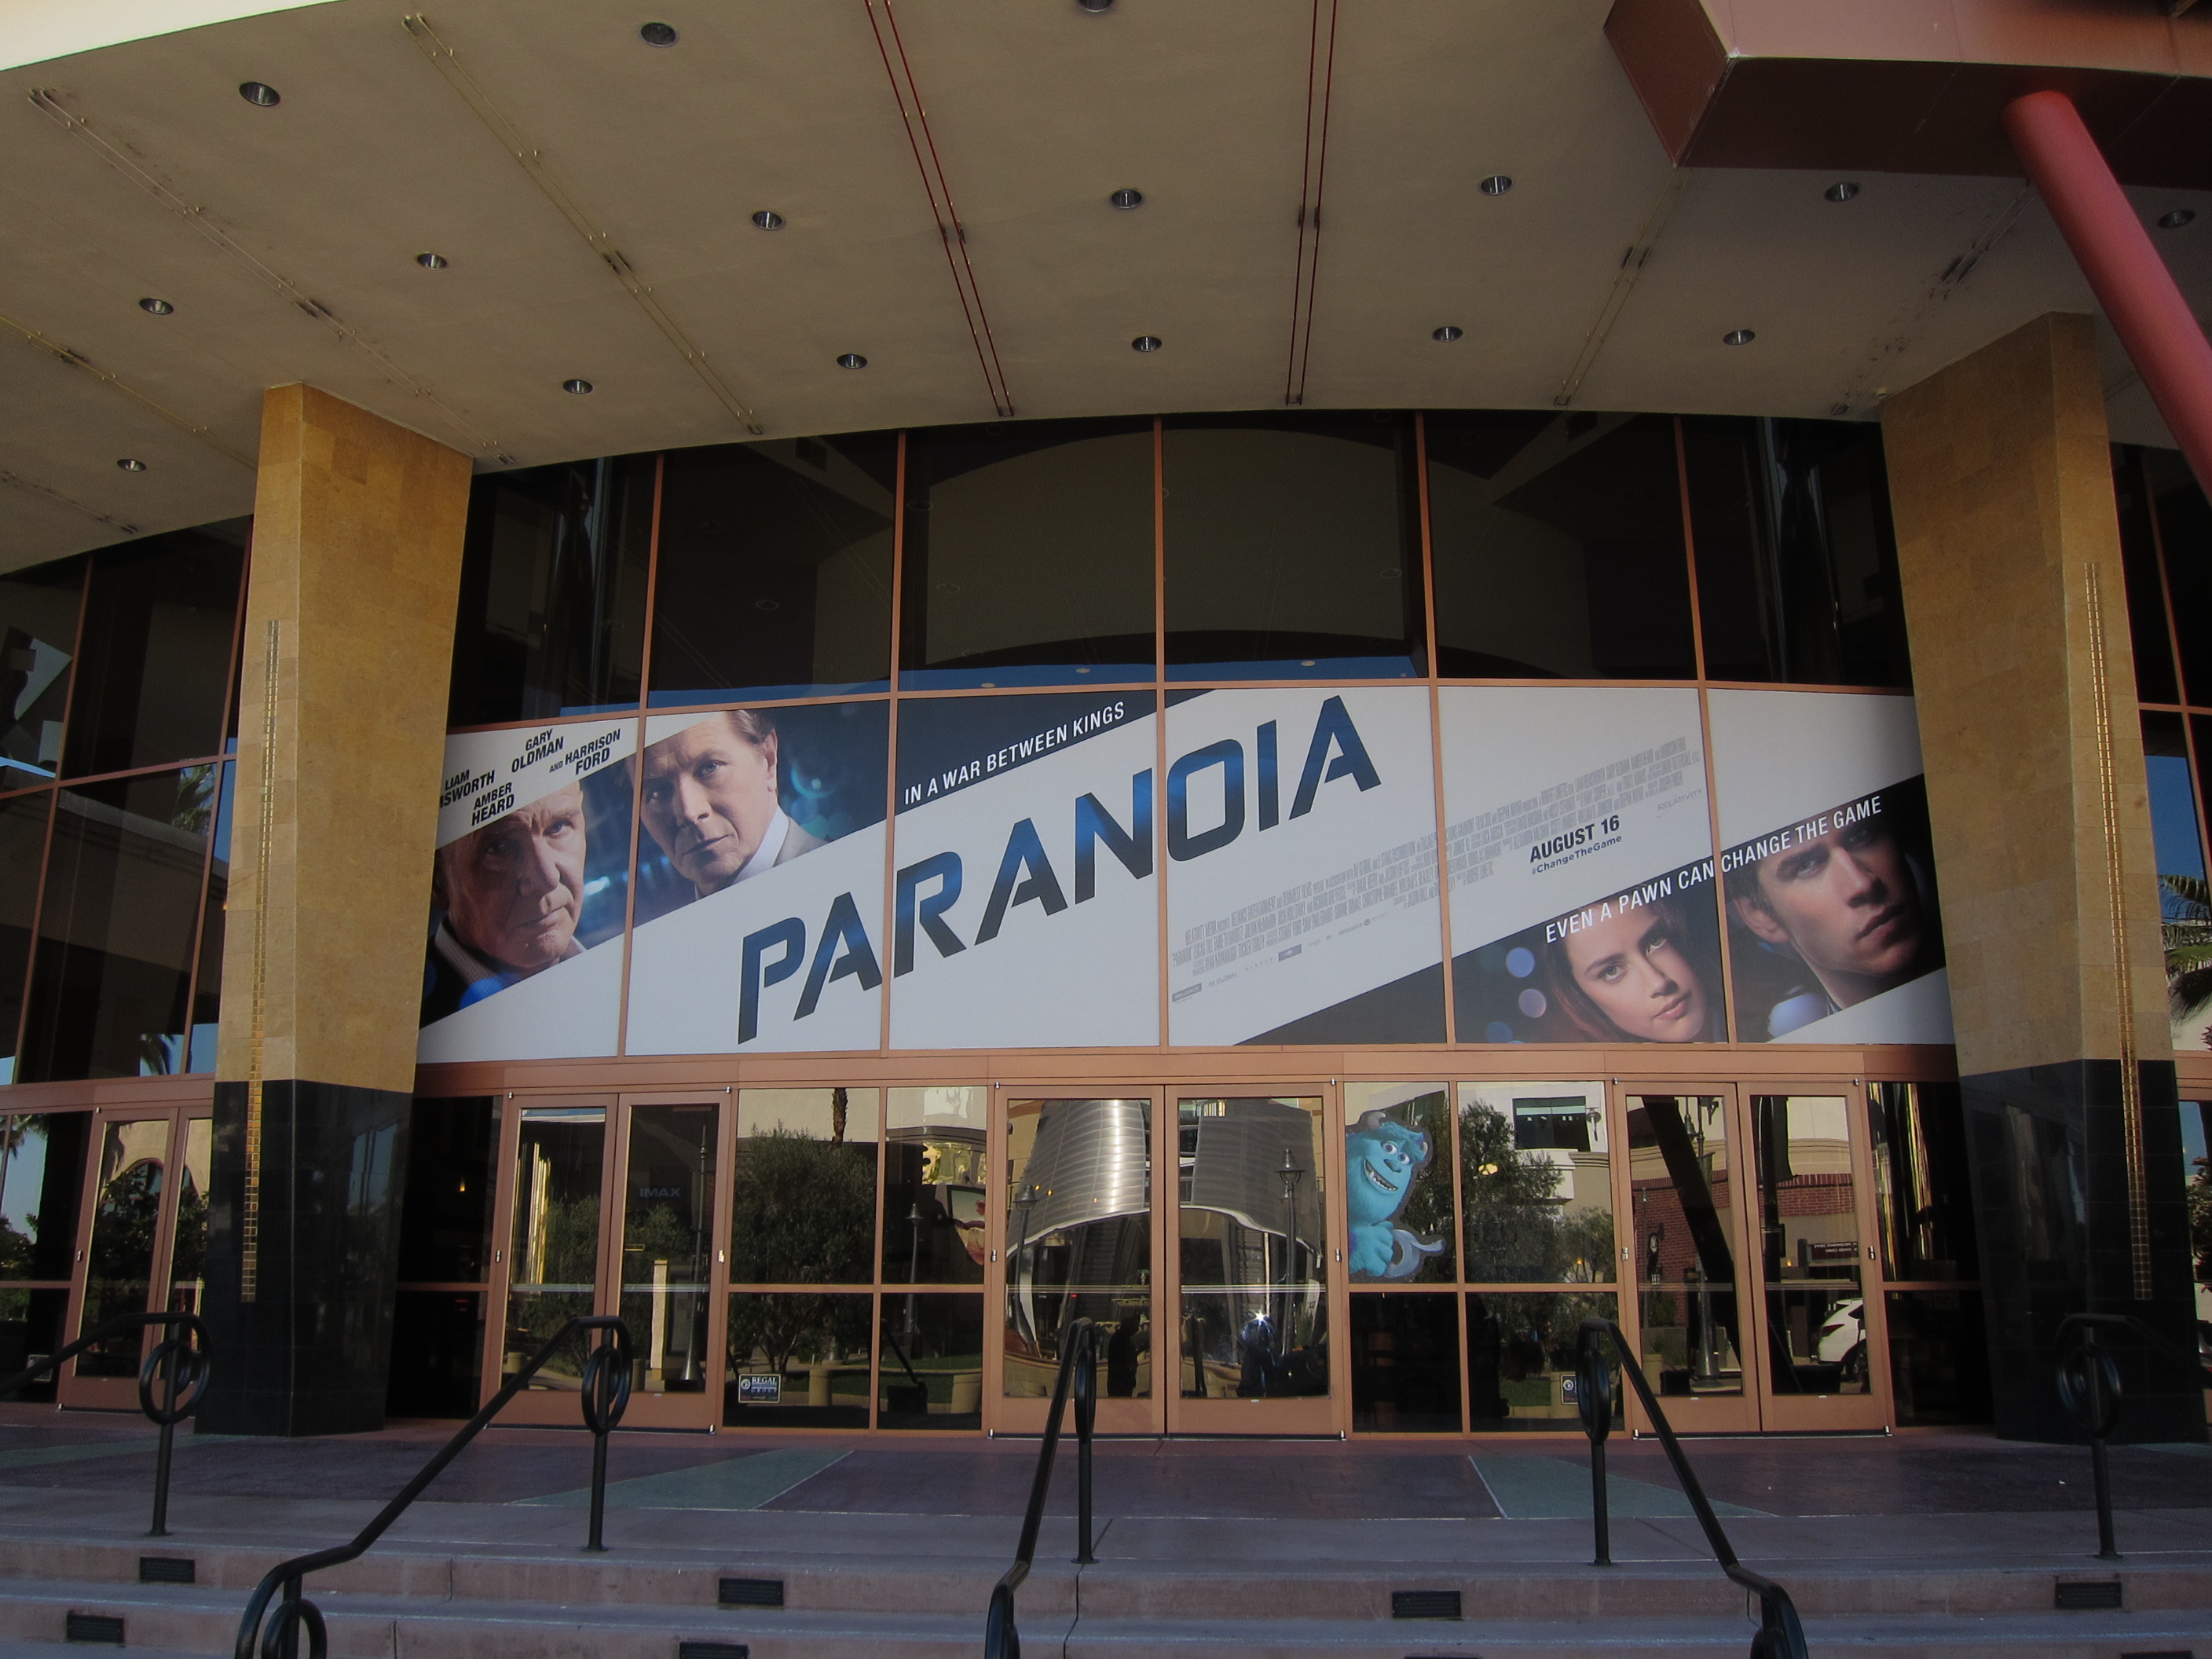 Giant PARANOIA image above the doors of the Regal Edwards Temecula Stadium 15.